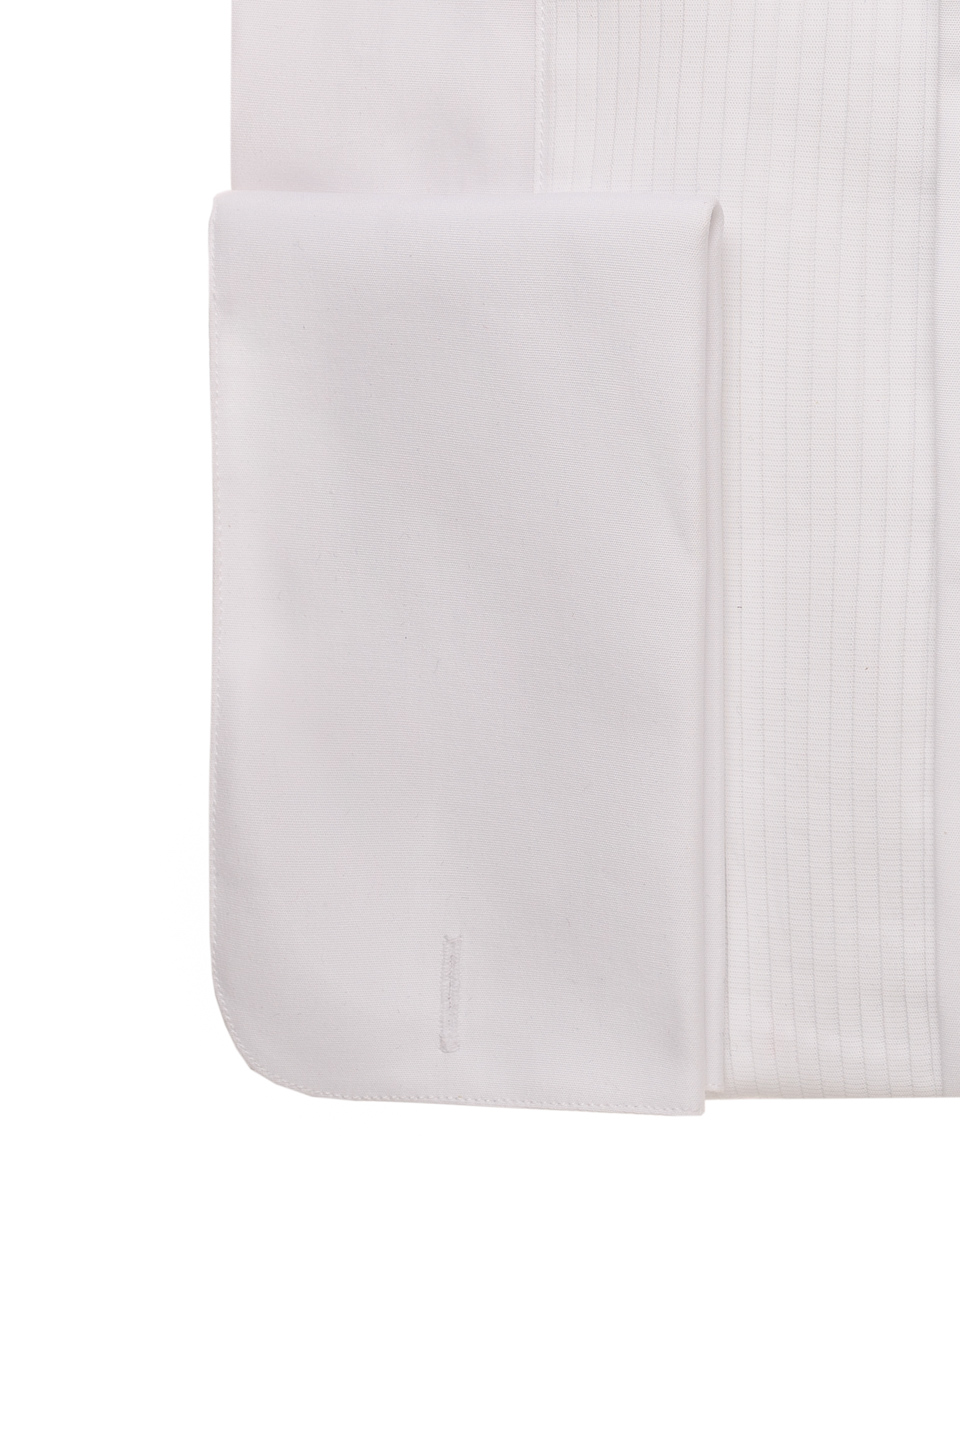 Webster White Dress Shirt - Double Cuff